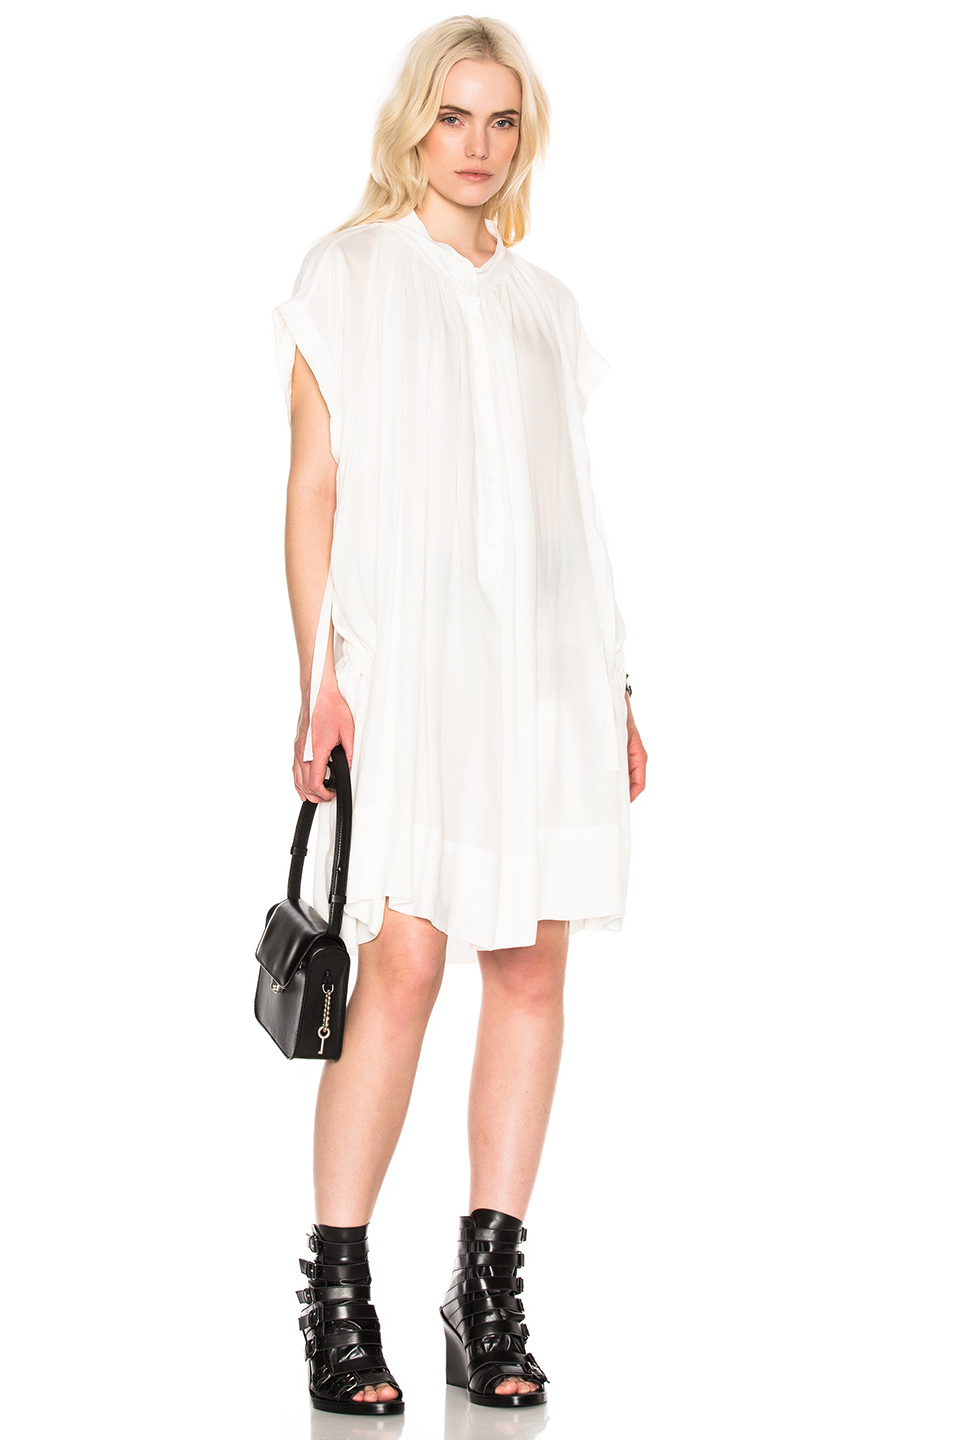 Ann Demeulemeester Tunic in White